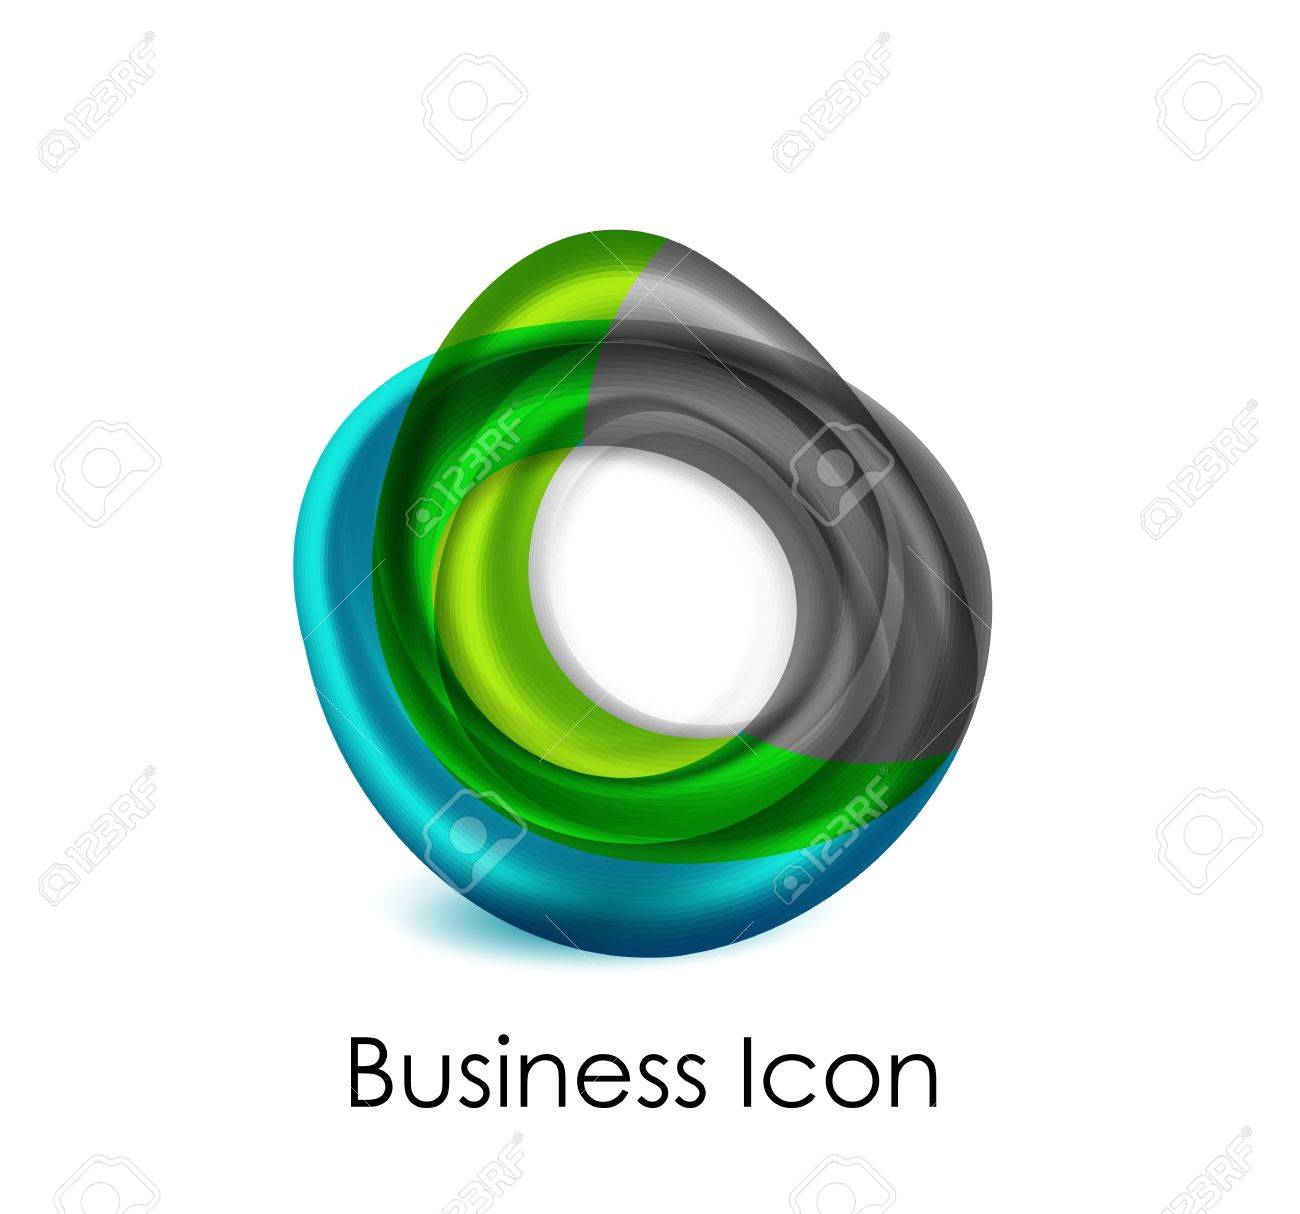 Abstract business icon Stock Vector - 16055359